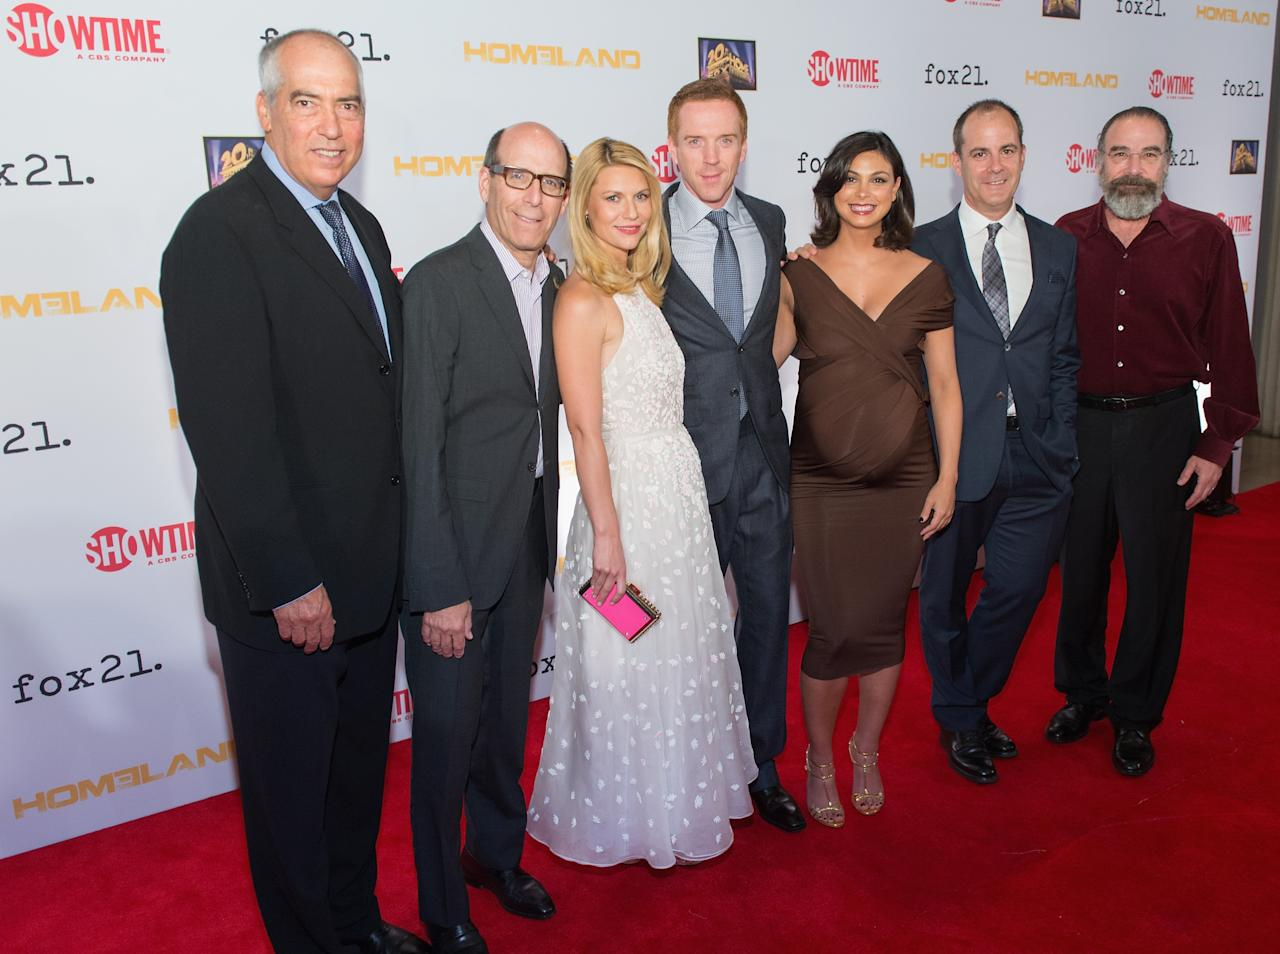 """WASHINGTON, DC - SEPTEMBER 09: (L-R) Co-Chairman of Fox 20th TV Gary Newman, CEO & Chairman of Showtime Networks Matthew C. Blank, Claire Danes, Damian Lewis, Morena Baccarin, President of Entertainment at Showtime Networks David Nevins and Mandy Patinkin attend a premiere screening hosted by SHOWTIME and Fox 21 for Season 3 of the hit series """"Homeland"""" at Corcoran Gallery of Art on September 9, 2013 in Washington City. (Photo by Daniel Boczarski/Getty Images for Showtime)"""